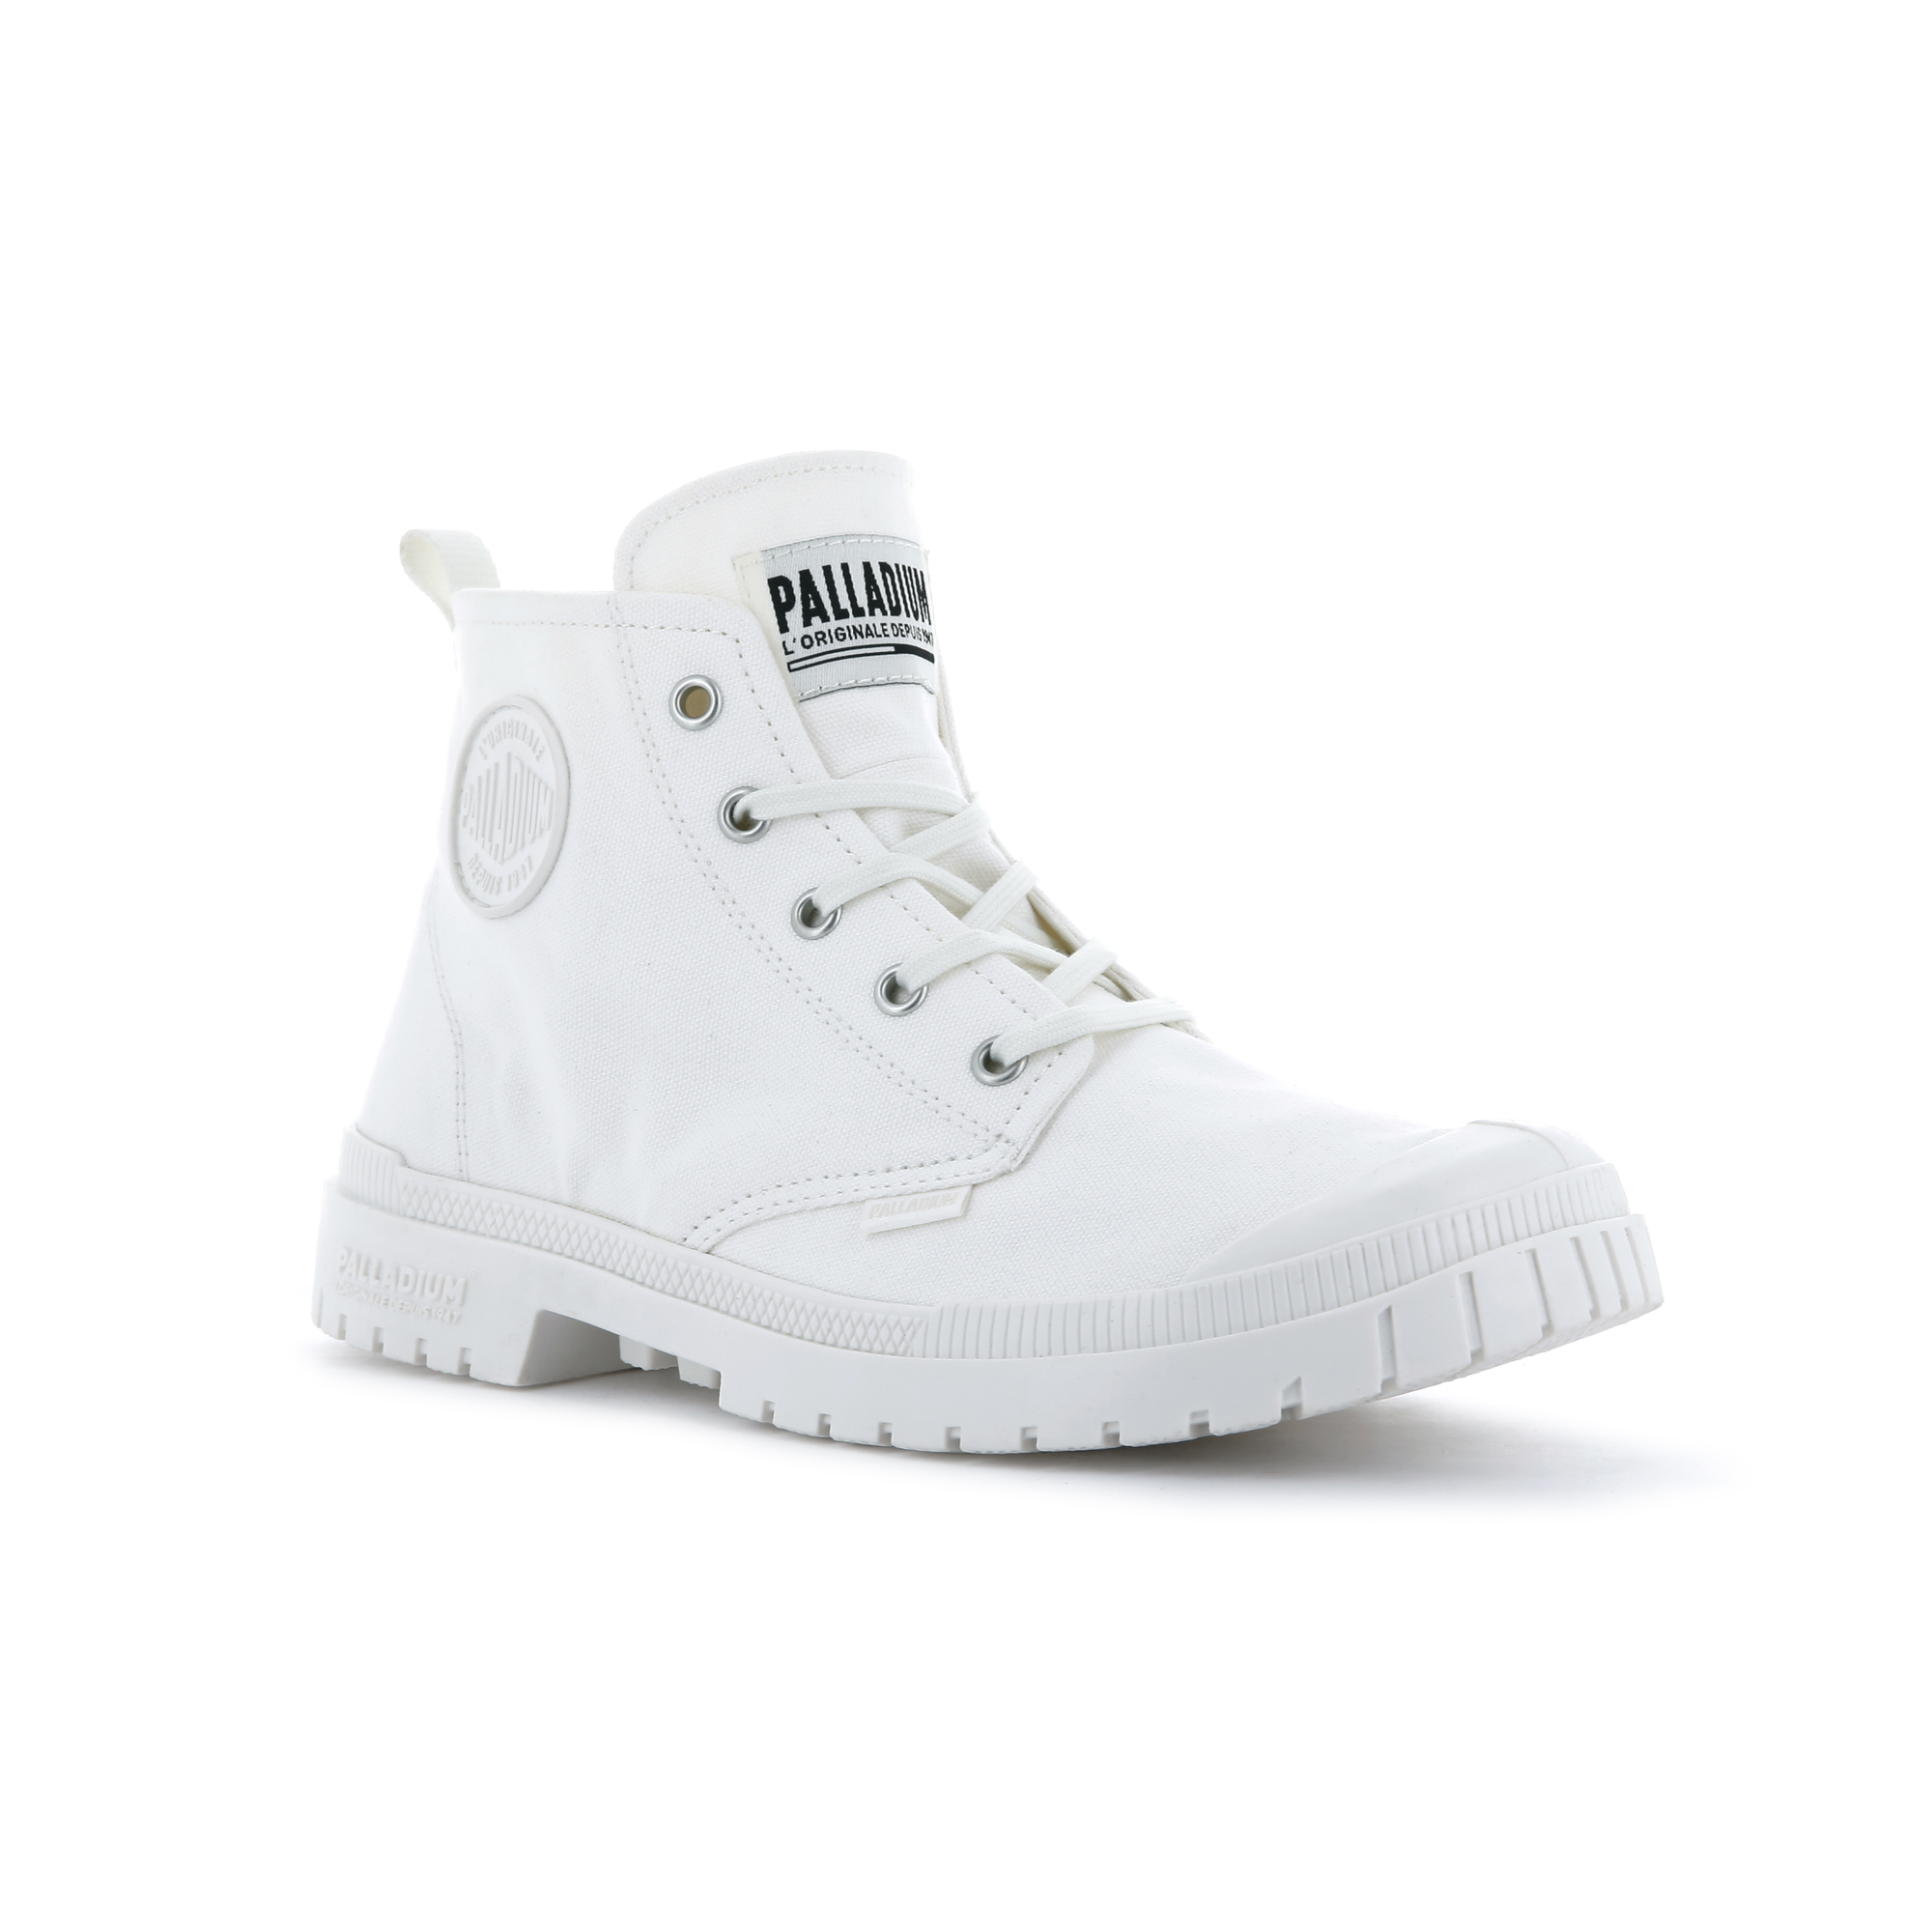 Pampa SP20 HI CVS - Star White